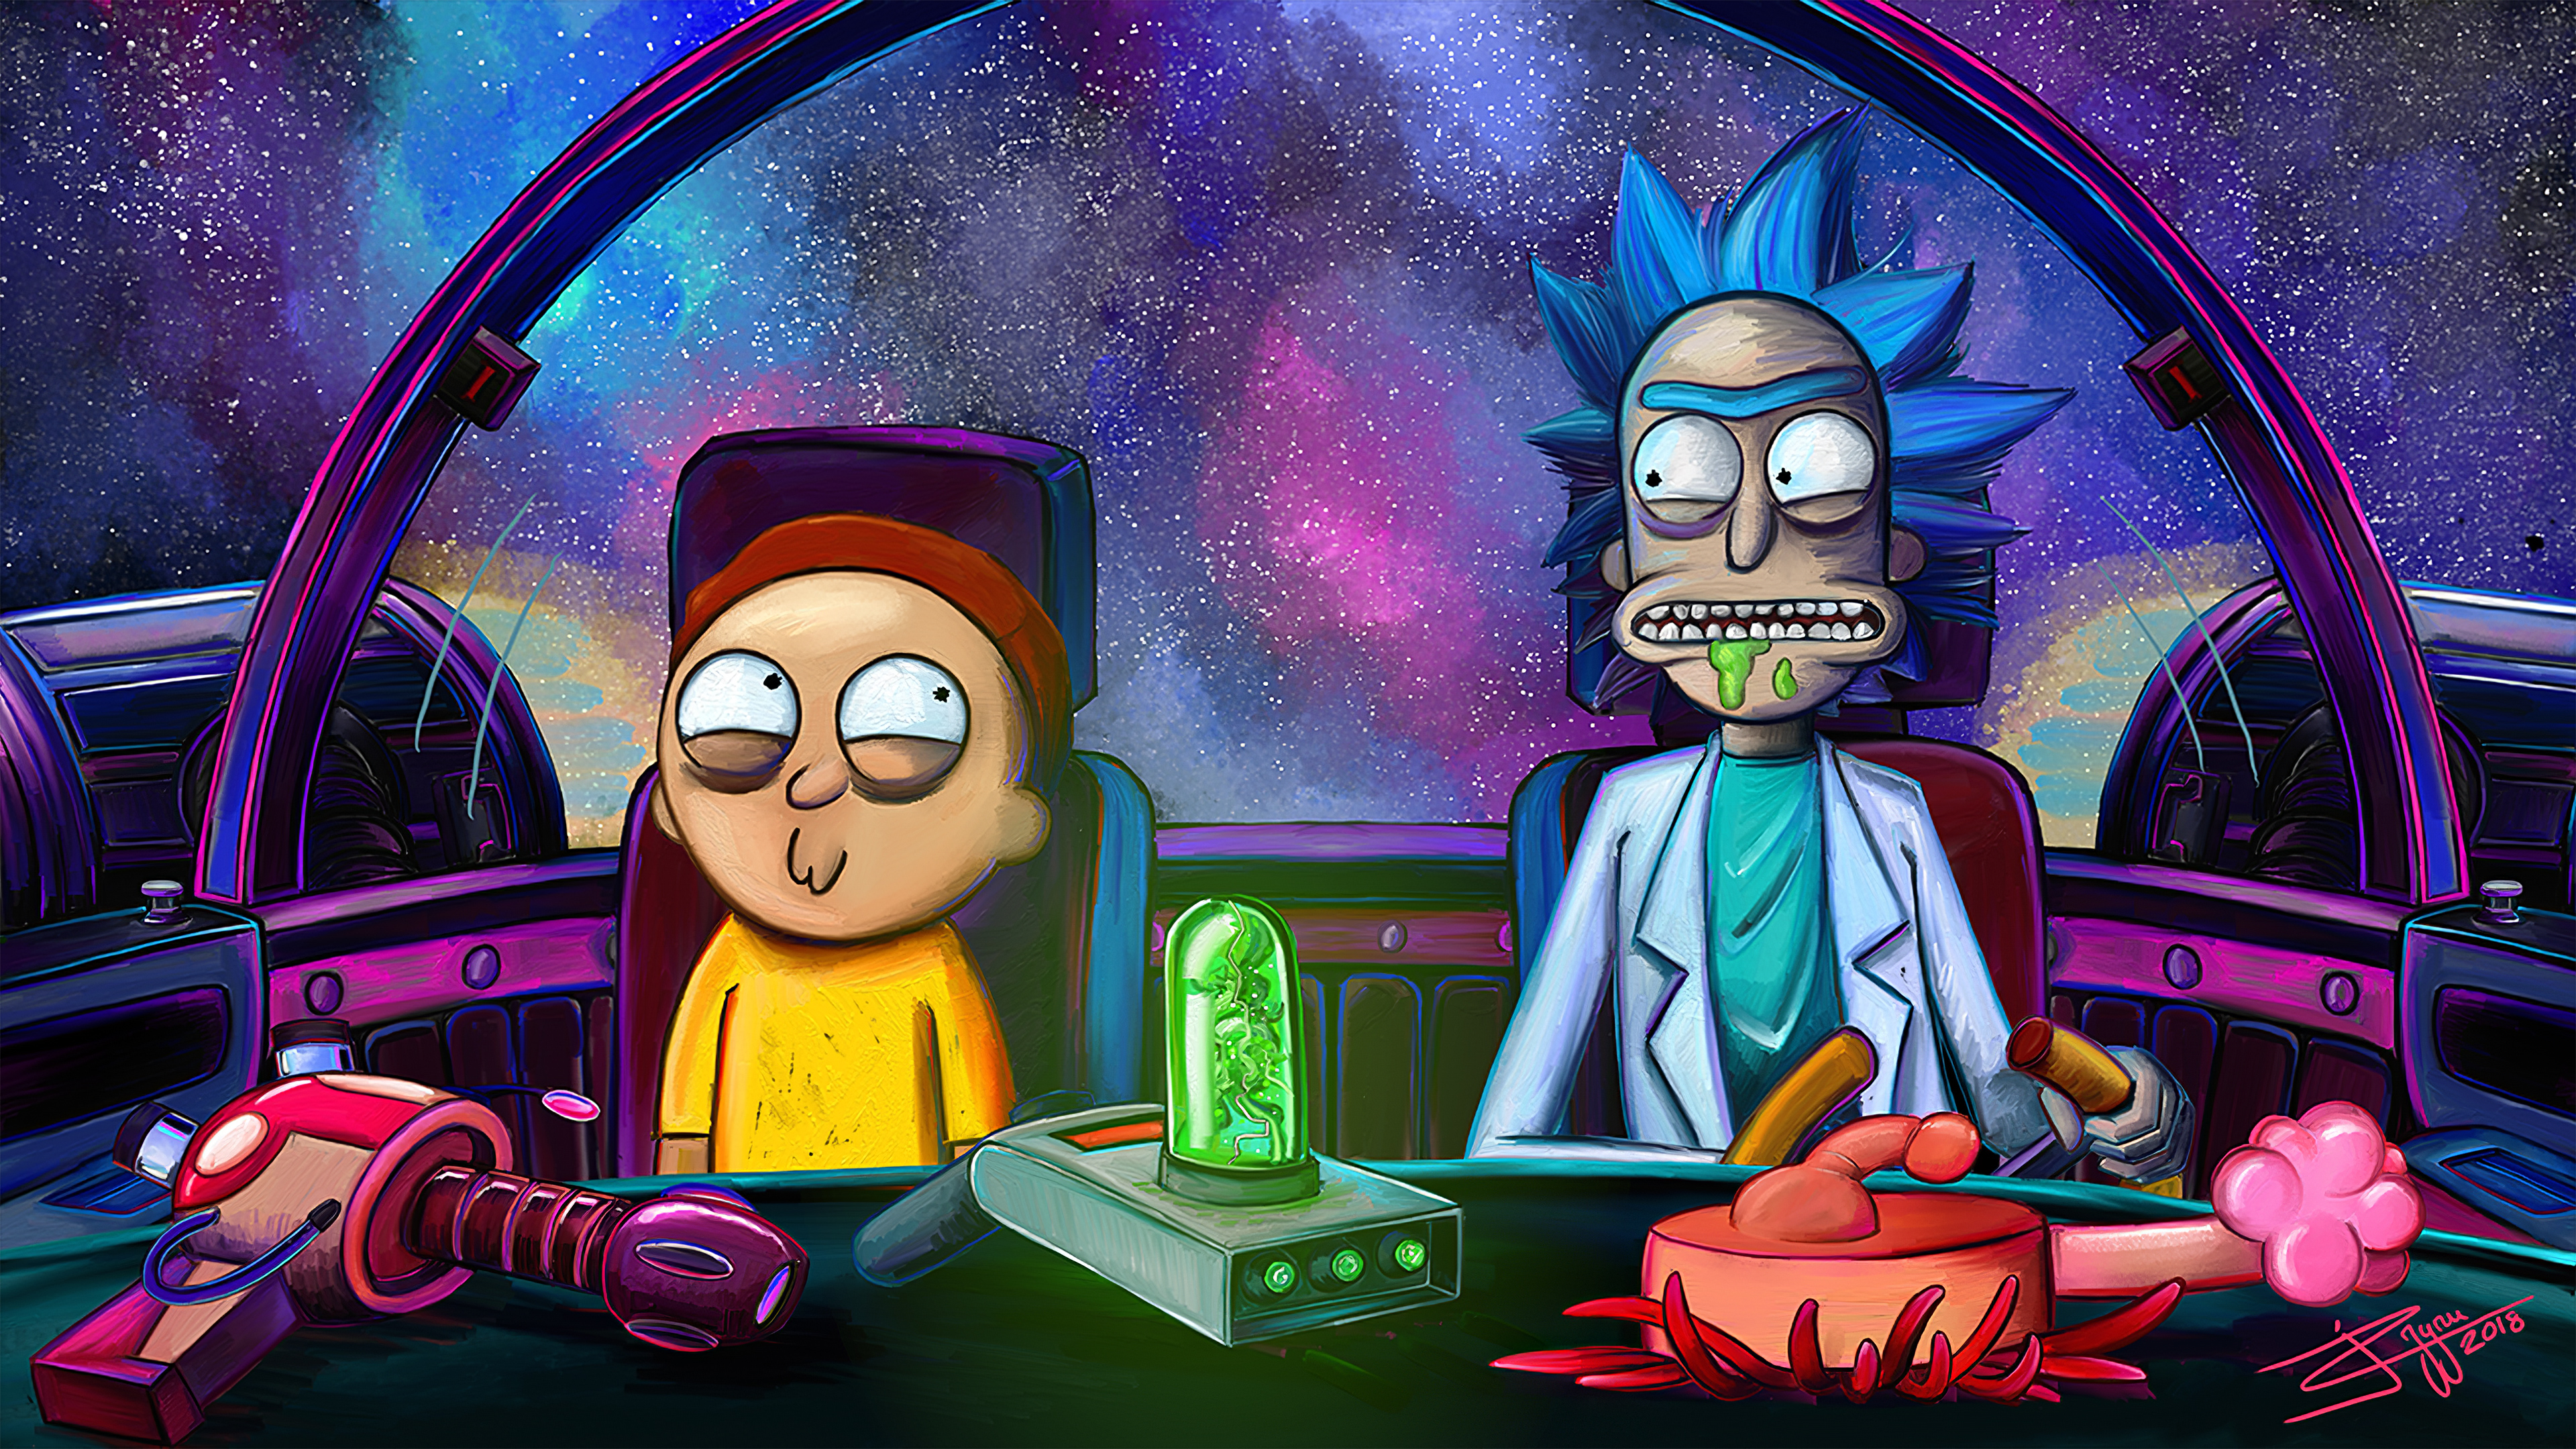 Wallpaper 4k Rick And Morty Netflix Rick And Morty Netflix 4k